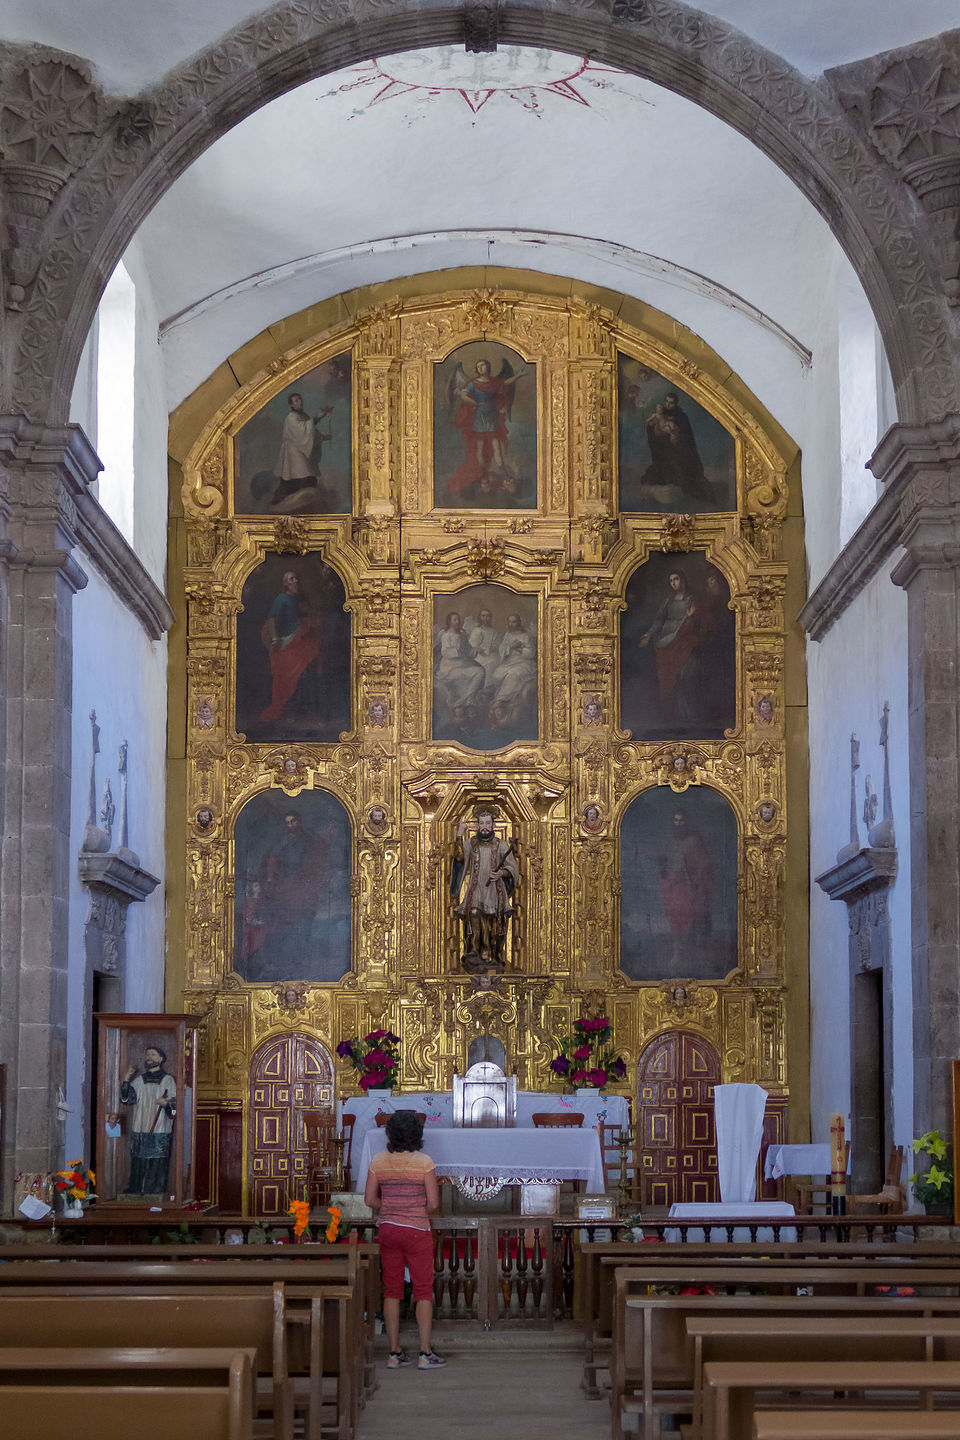 Interior of Mision San Francisco Javier